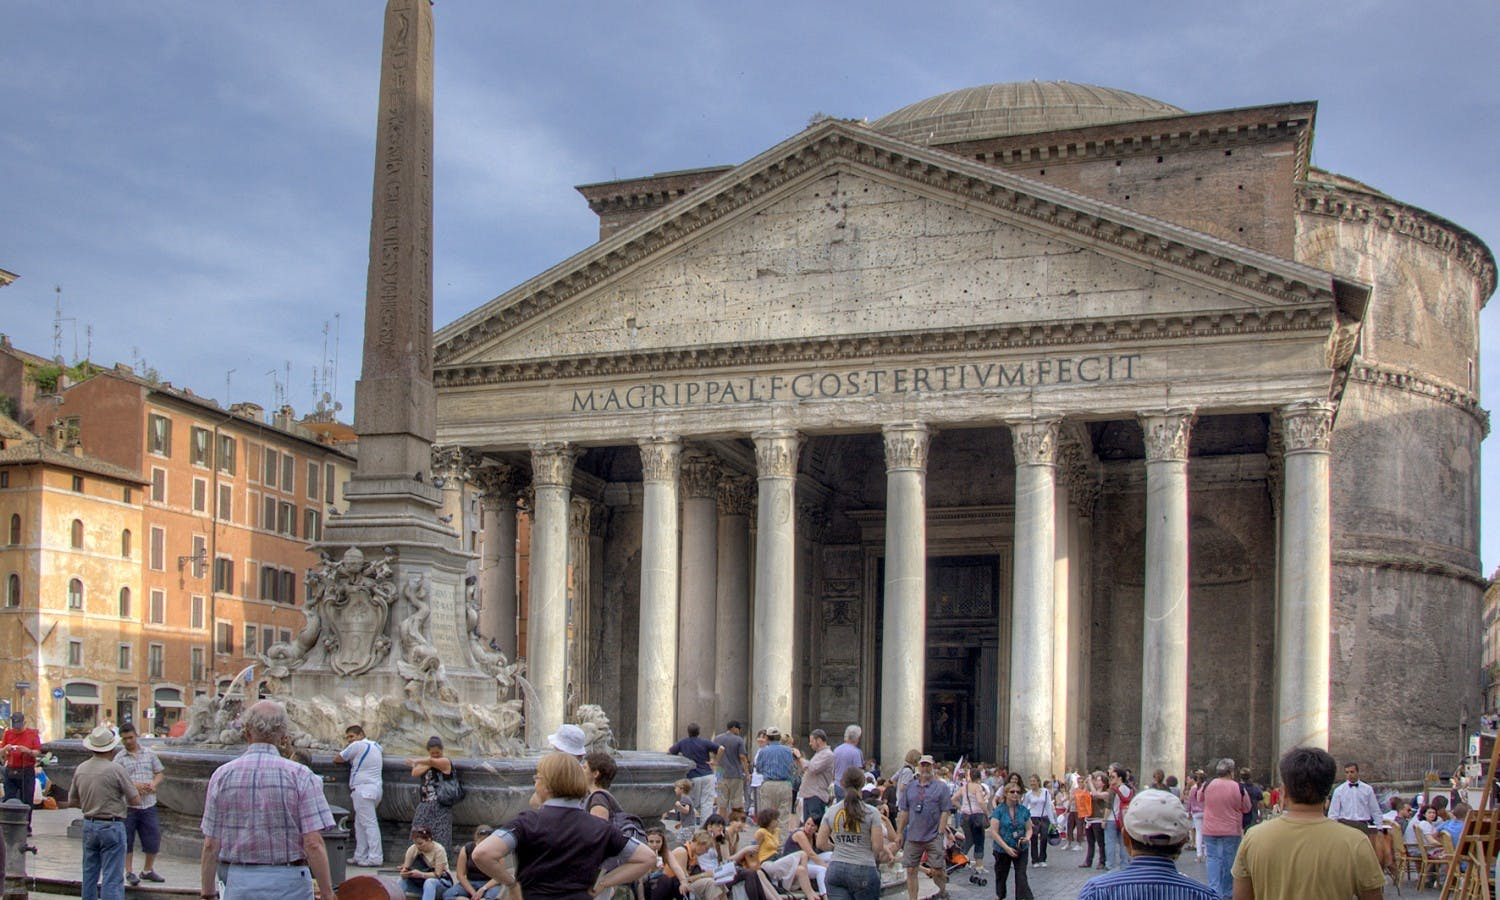 Ancient Rome tour with Colosseum, Pantheon and Piazza Navona